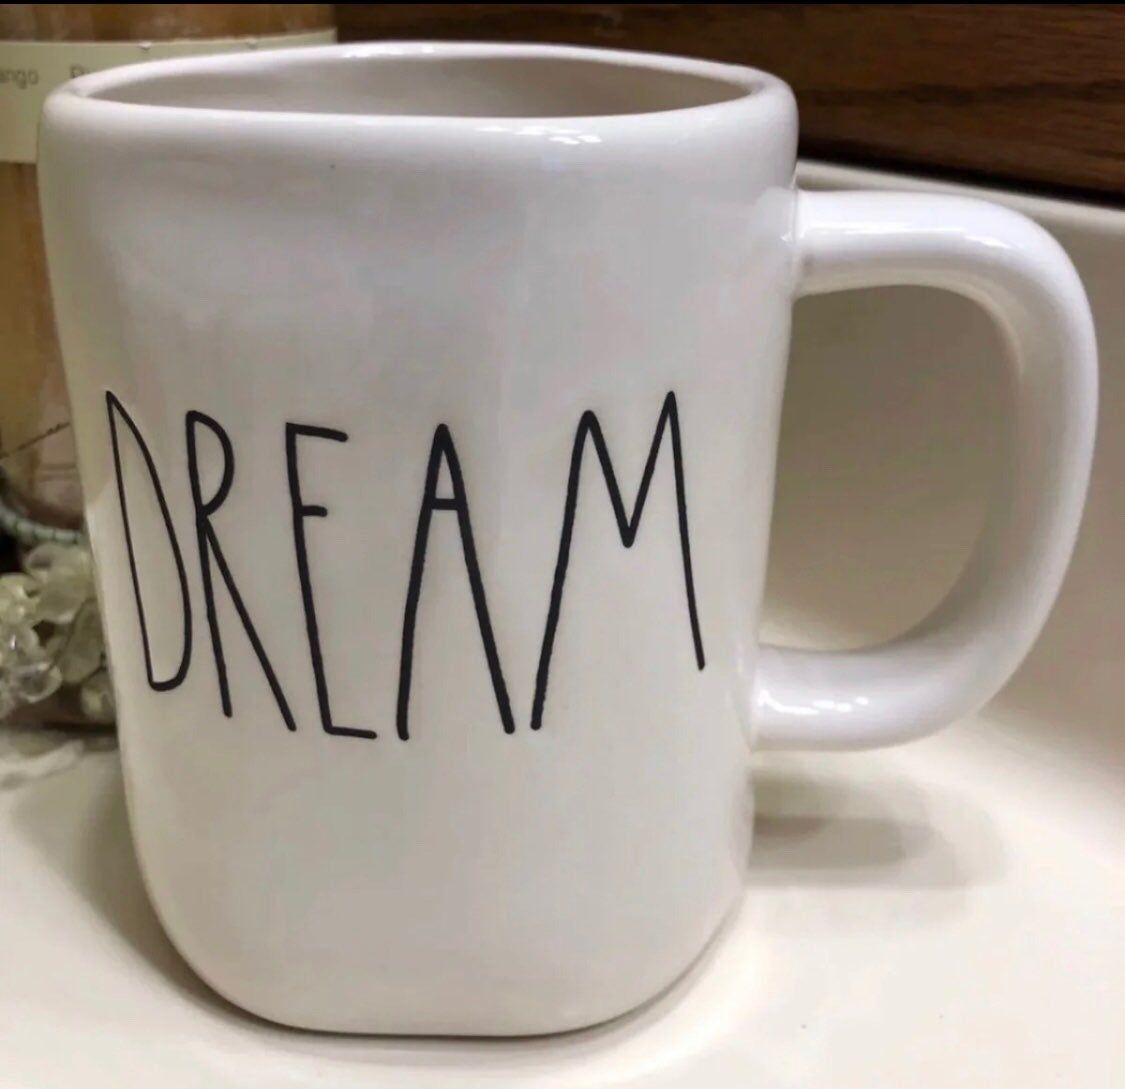 This Is A Fun Rae Dunn Ceramic Coffee Or Tea Mug With The Word Dream On It I Included Pictures From All Angle Coffee And Tea Accessories Mugs Coffee Tea